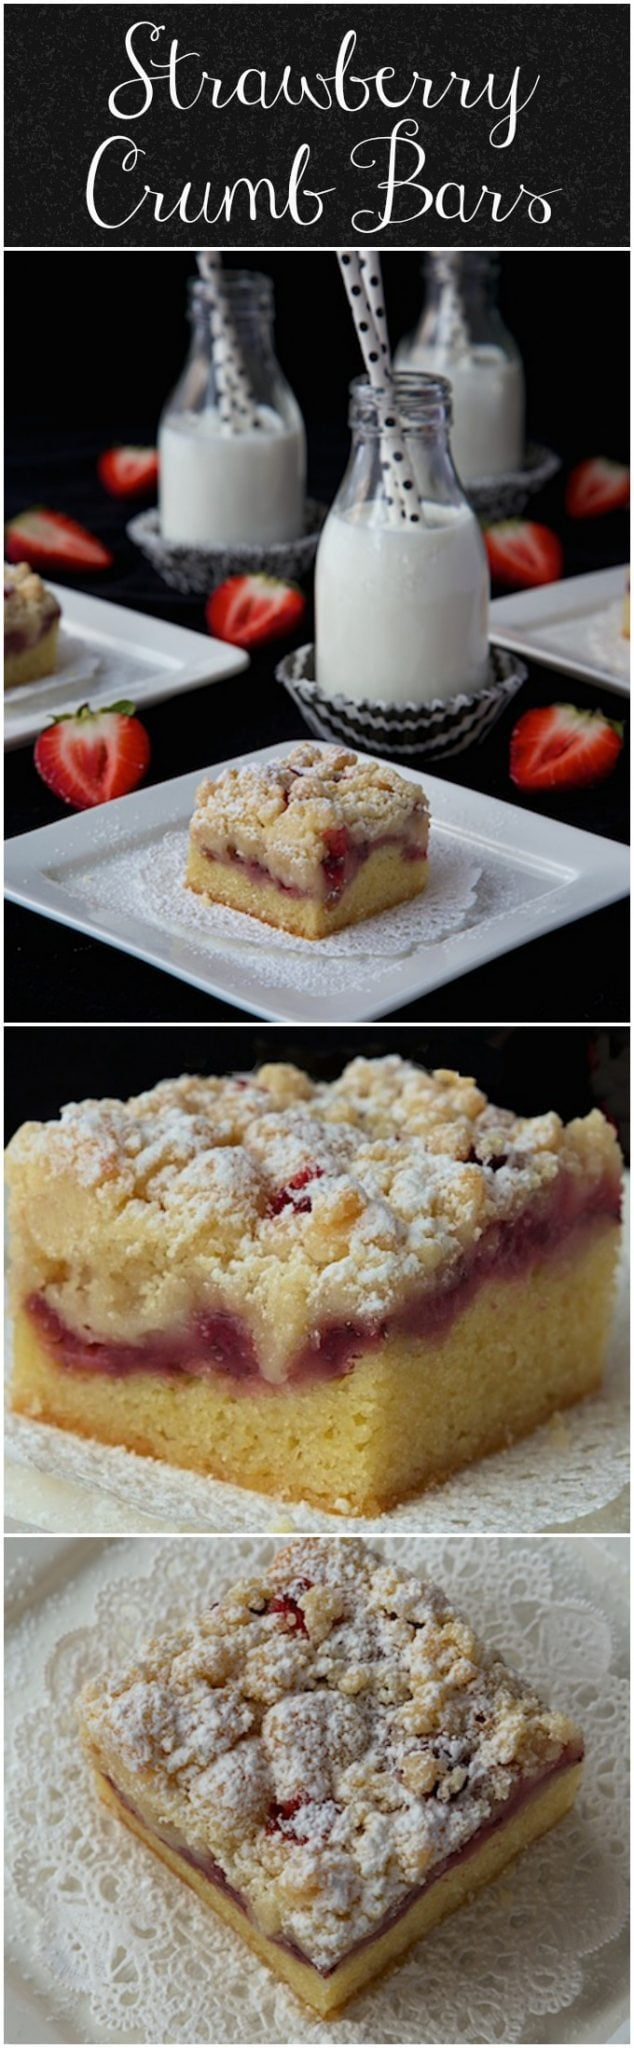 Three layers of deliciousness - a moist, buttery cake base, fresh sweet strawberries and a thick layer of delicious crumbly streusel!